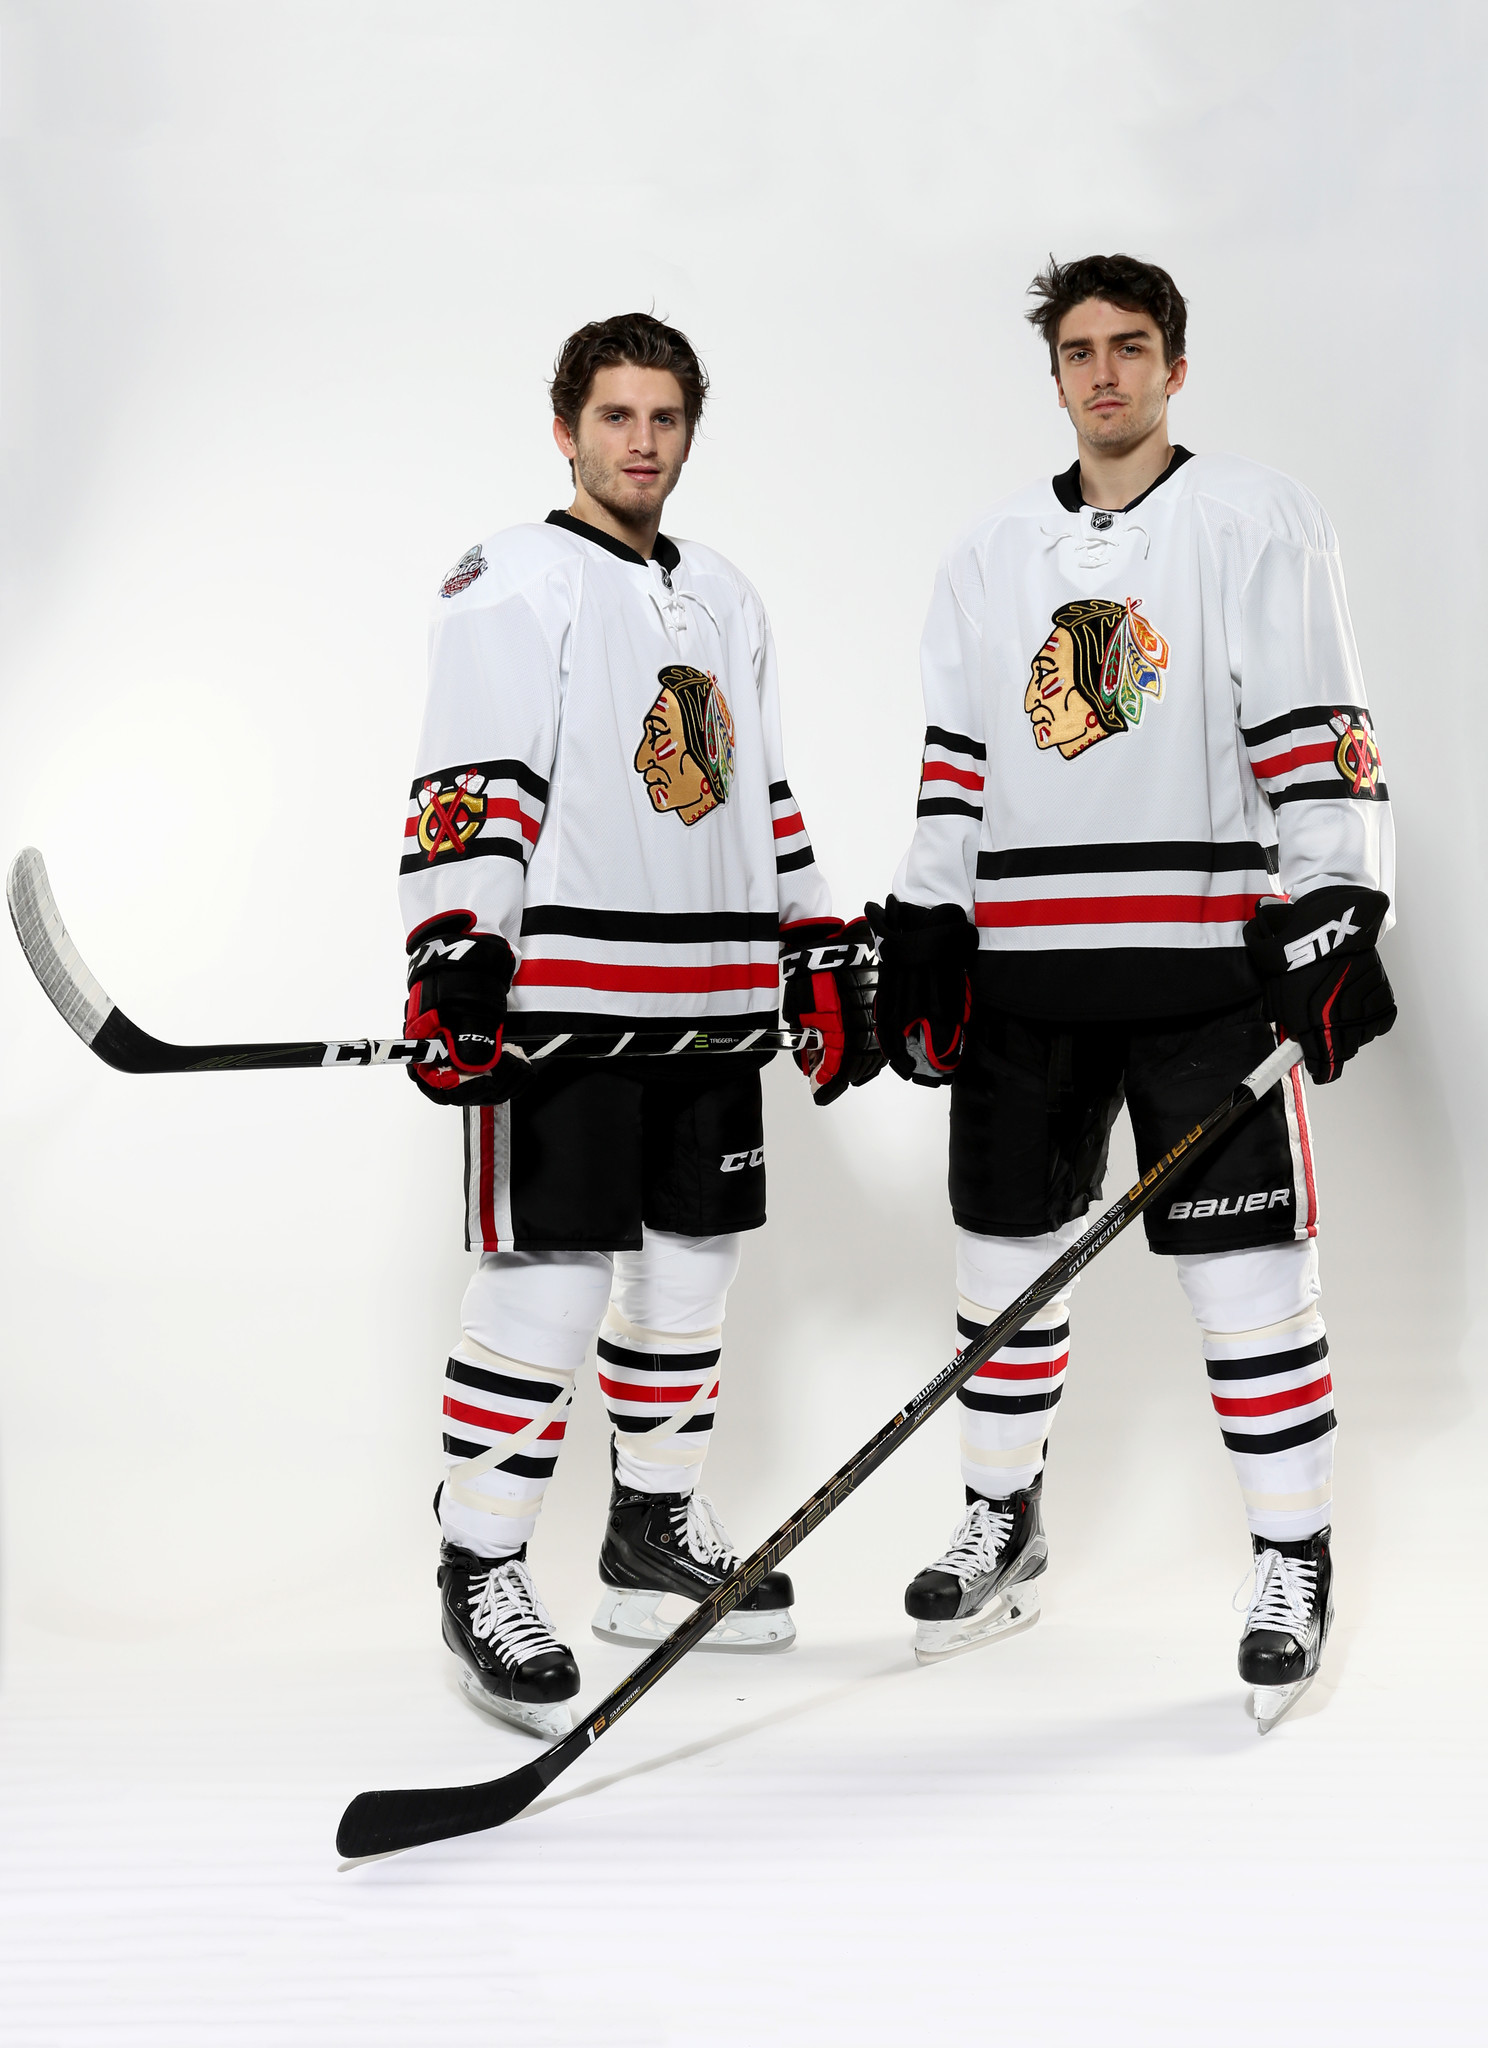 8eae508b31c Blackhawks unveil Winter Classic uniforms - Chicago Tribune